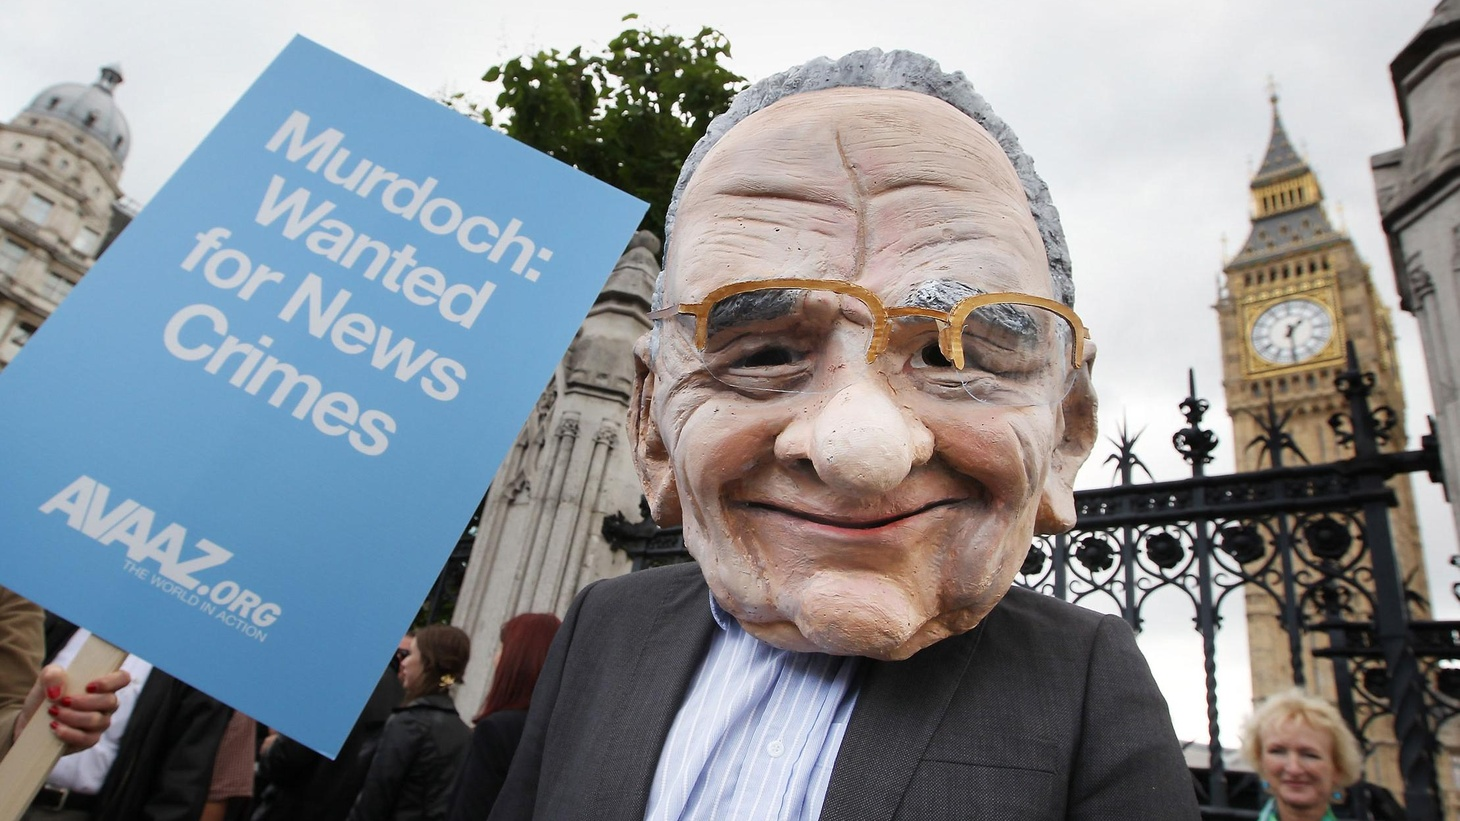 At a hearing today, Rupert Murdoch apologized, denied previous knowledge and blamed subordinates for the phone-hacking and bribery scandal rocking Britain's political elite....